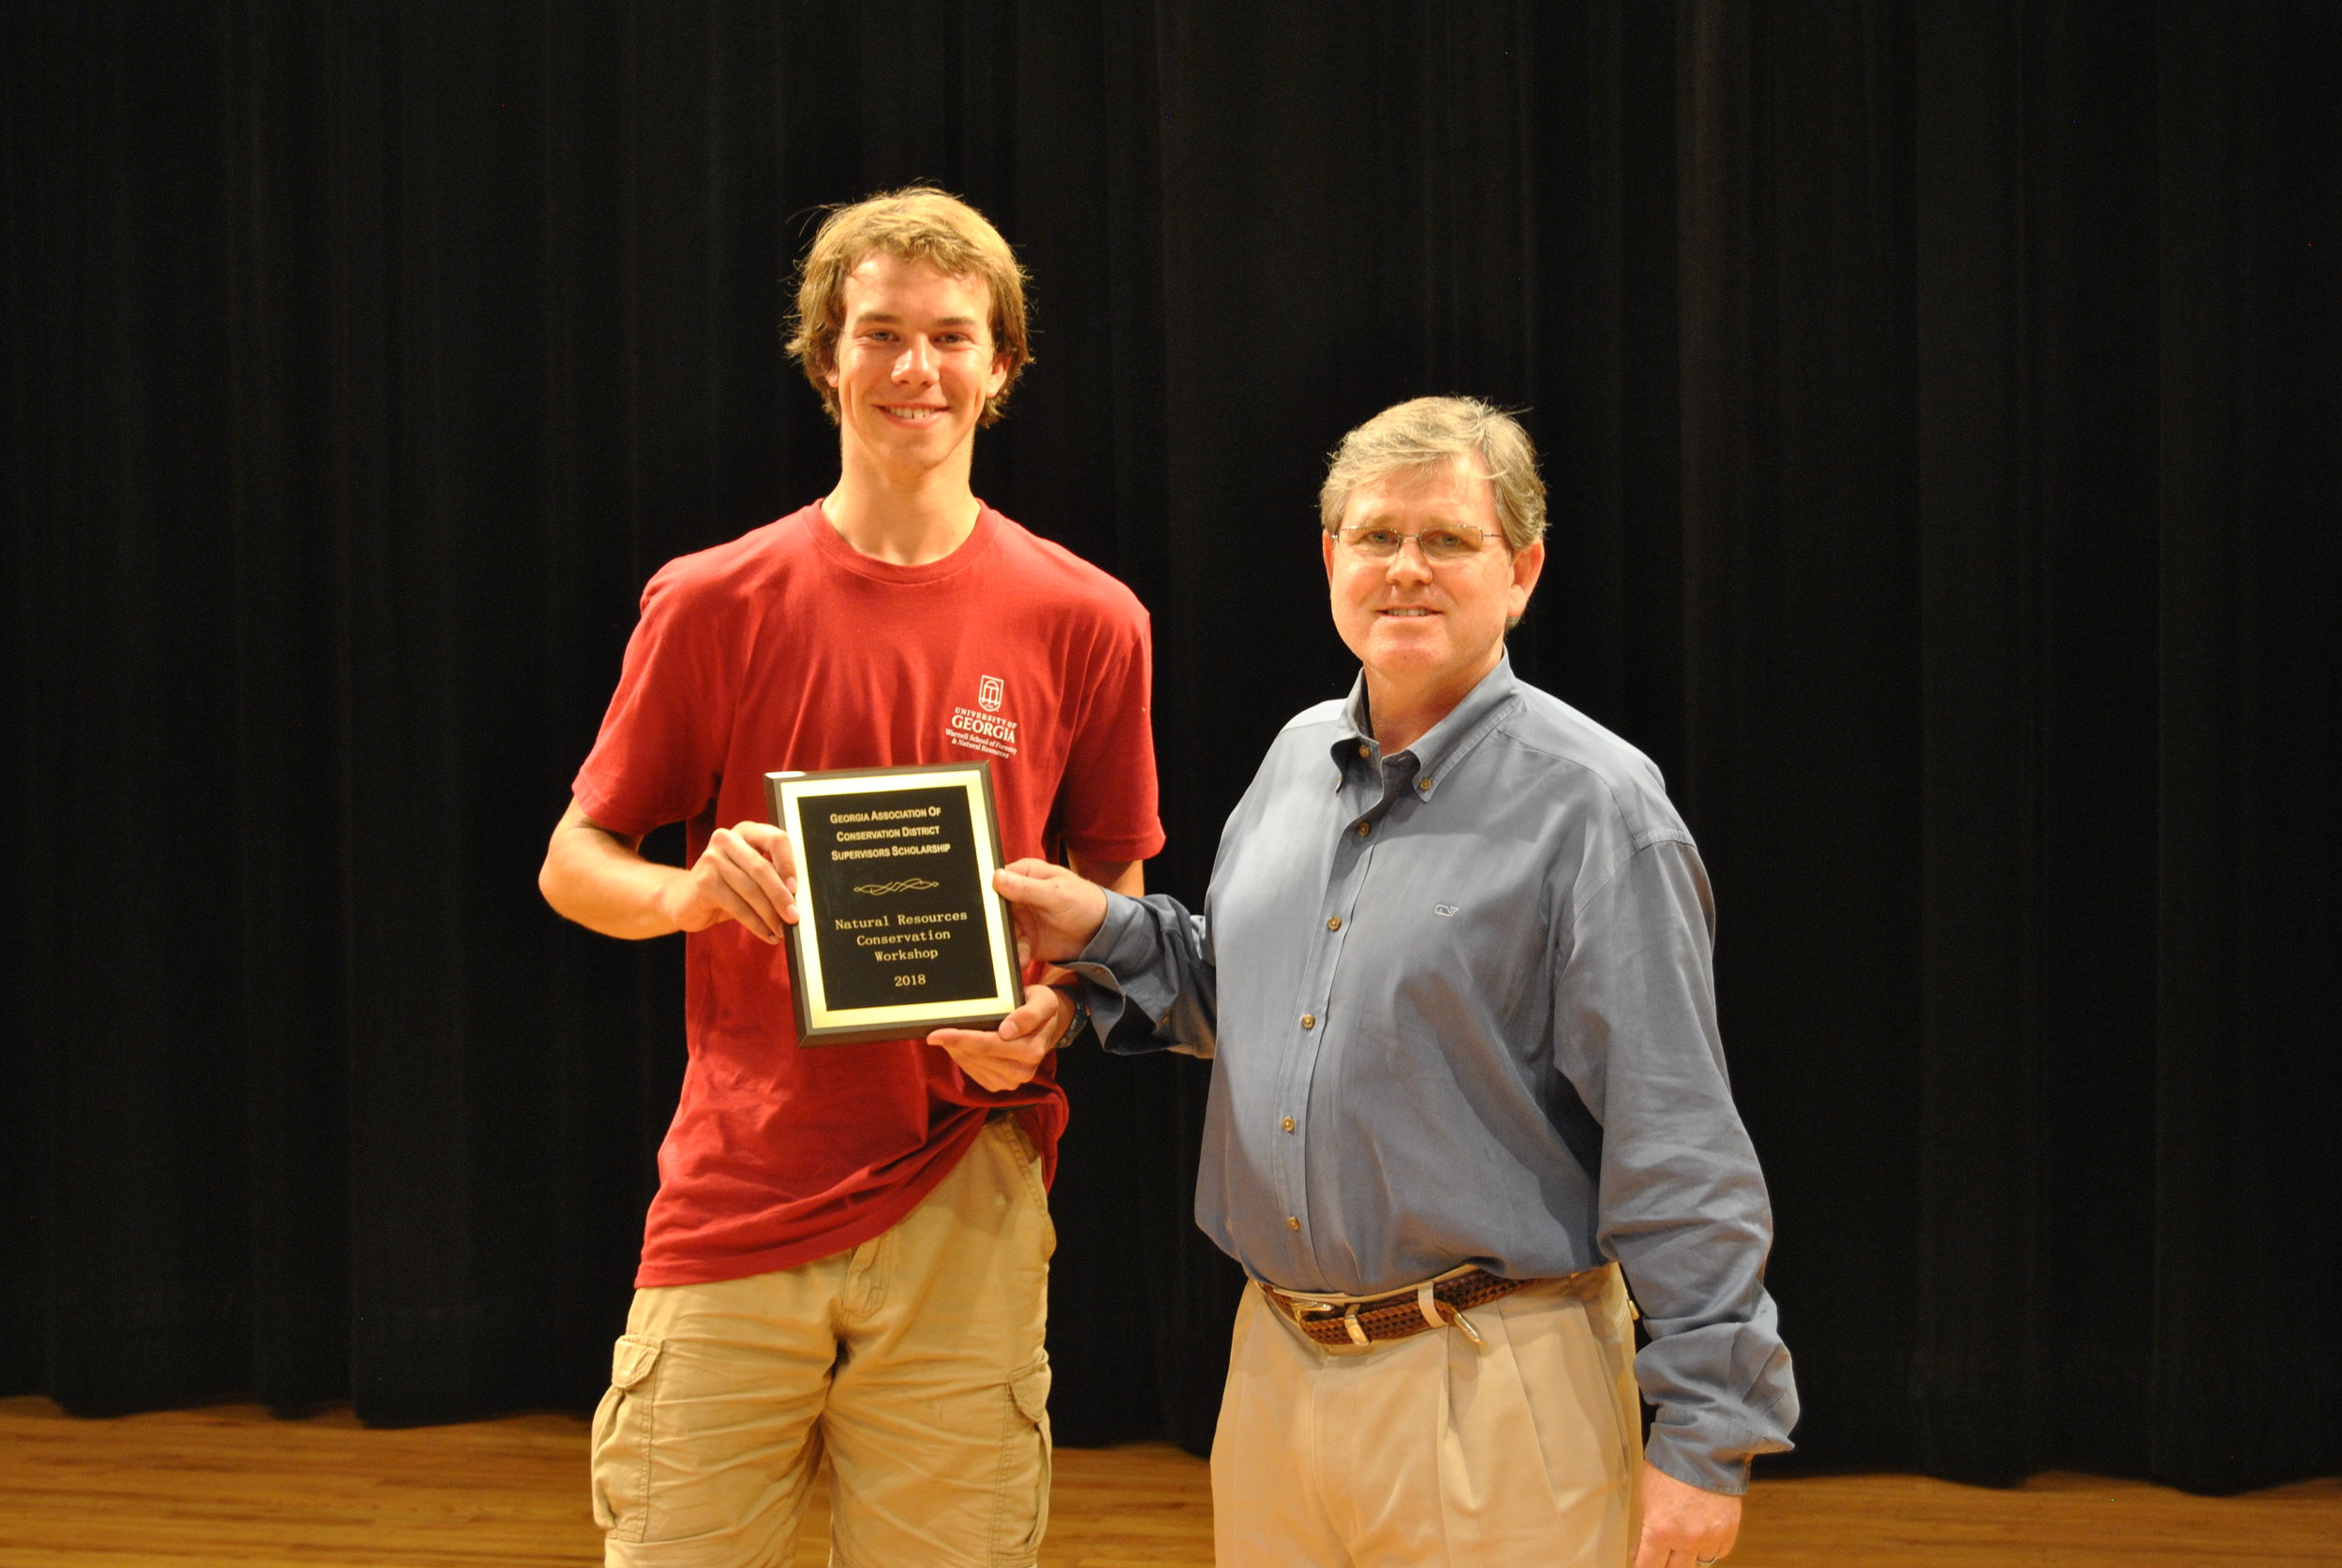 2018 GA Conservation District Scholarship winner Rhys Medcalfe.